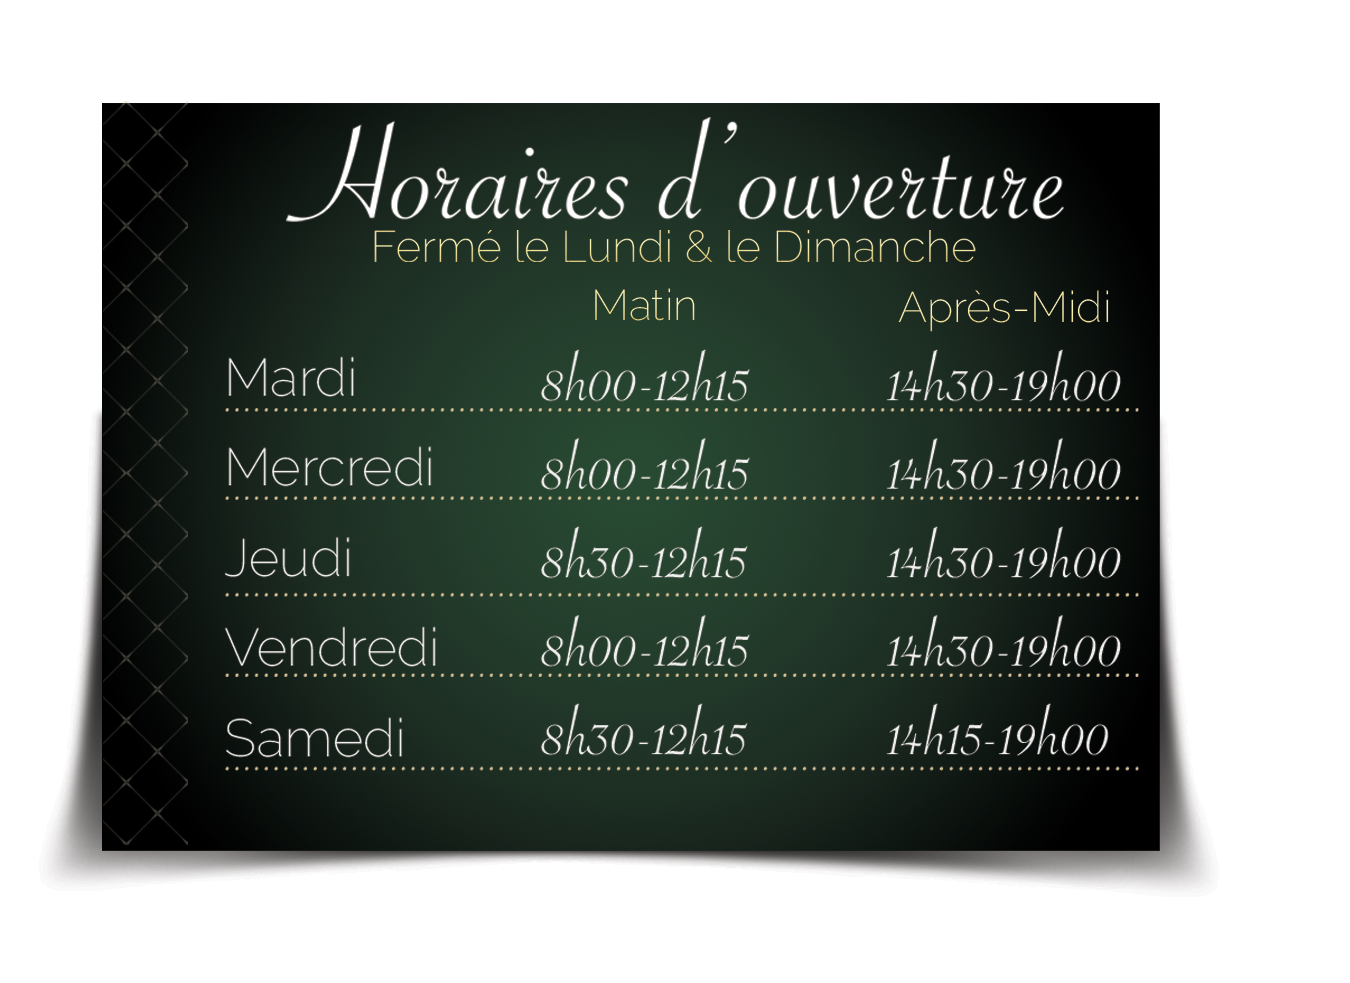 horaires-ouverture-cafes-brand-torréfaction-annecy.png